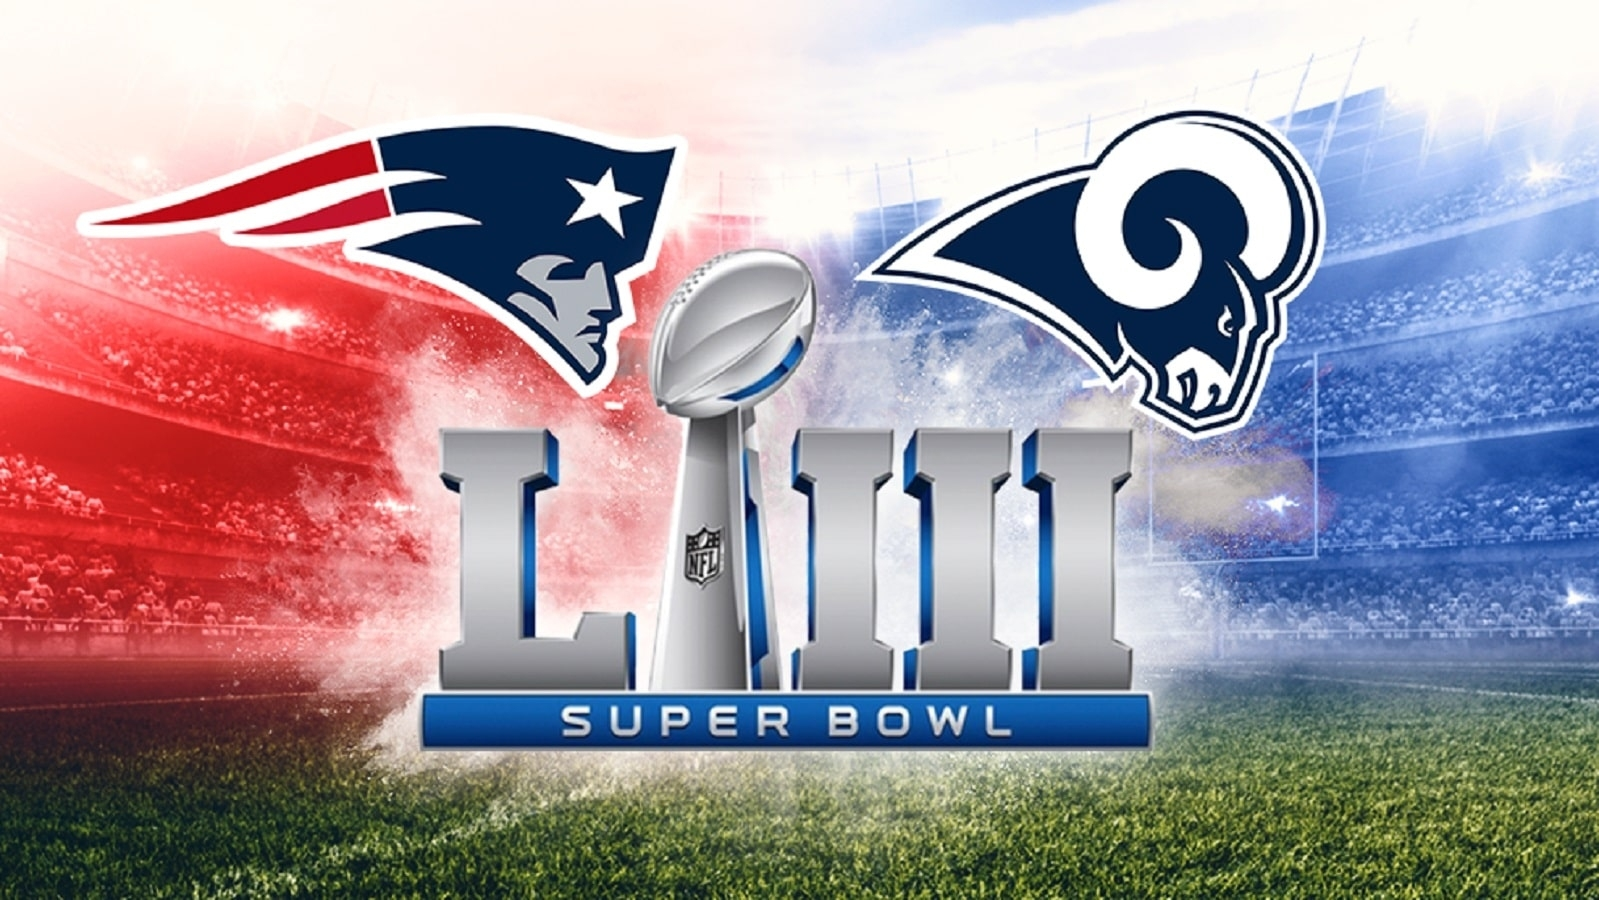 How To Stream Super Bowl Liii Online For Free In February 2019 inside Cbs Super Bowl 2019